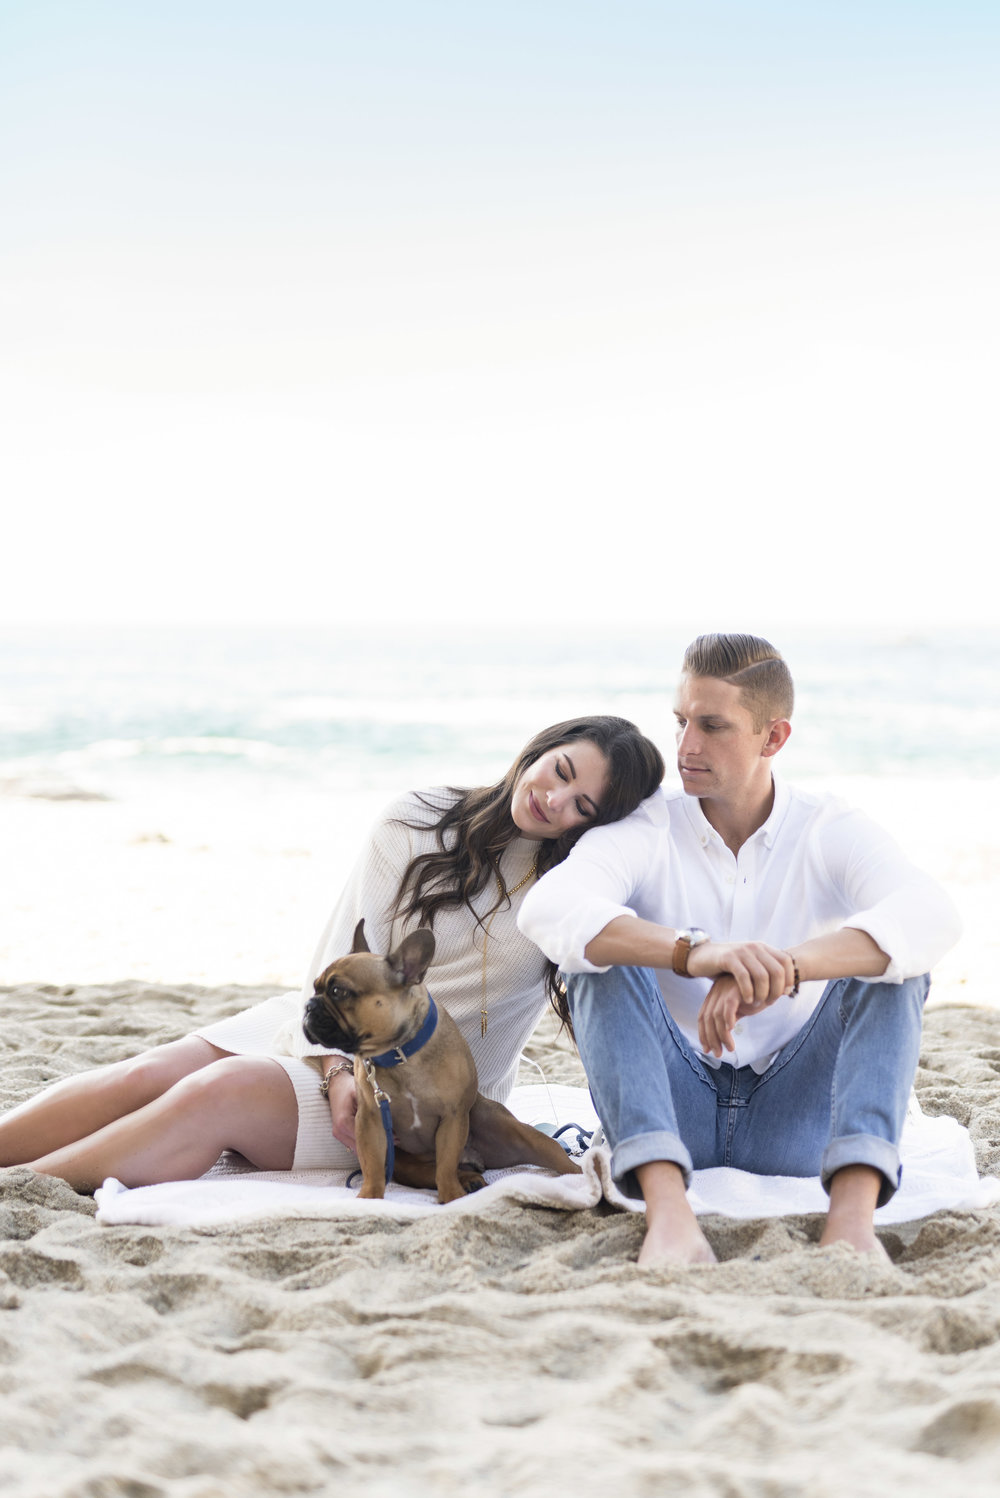 Maternity photos on the beach, french bulldog, Christmas photos neutral white outfits.